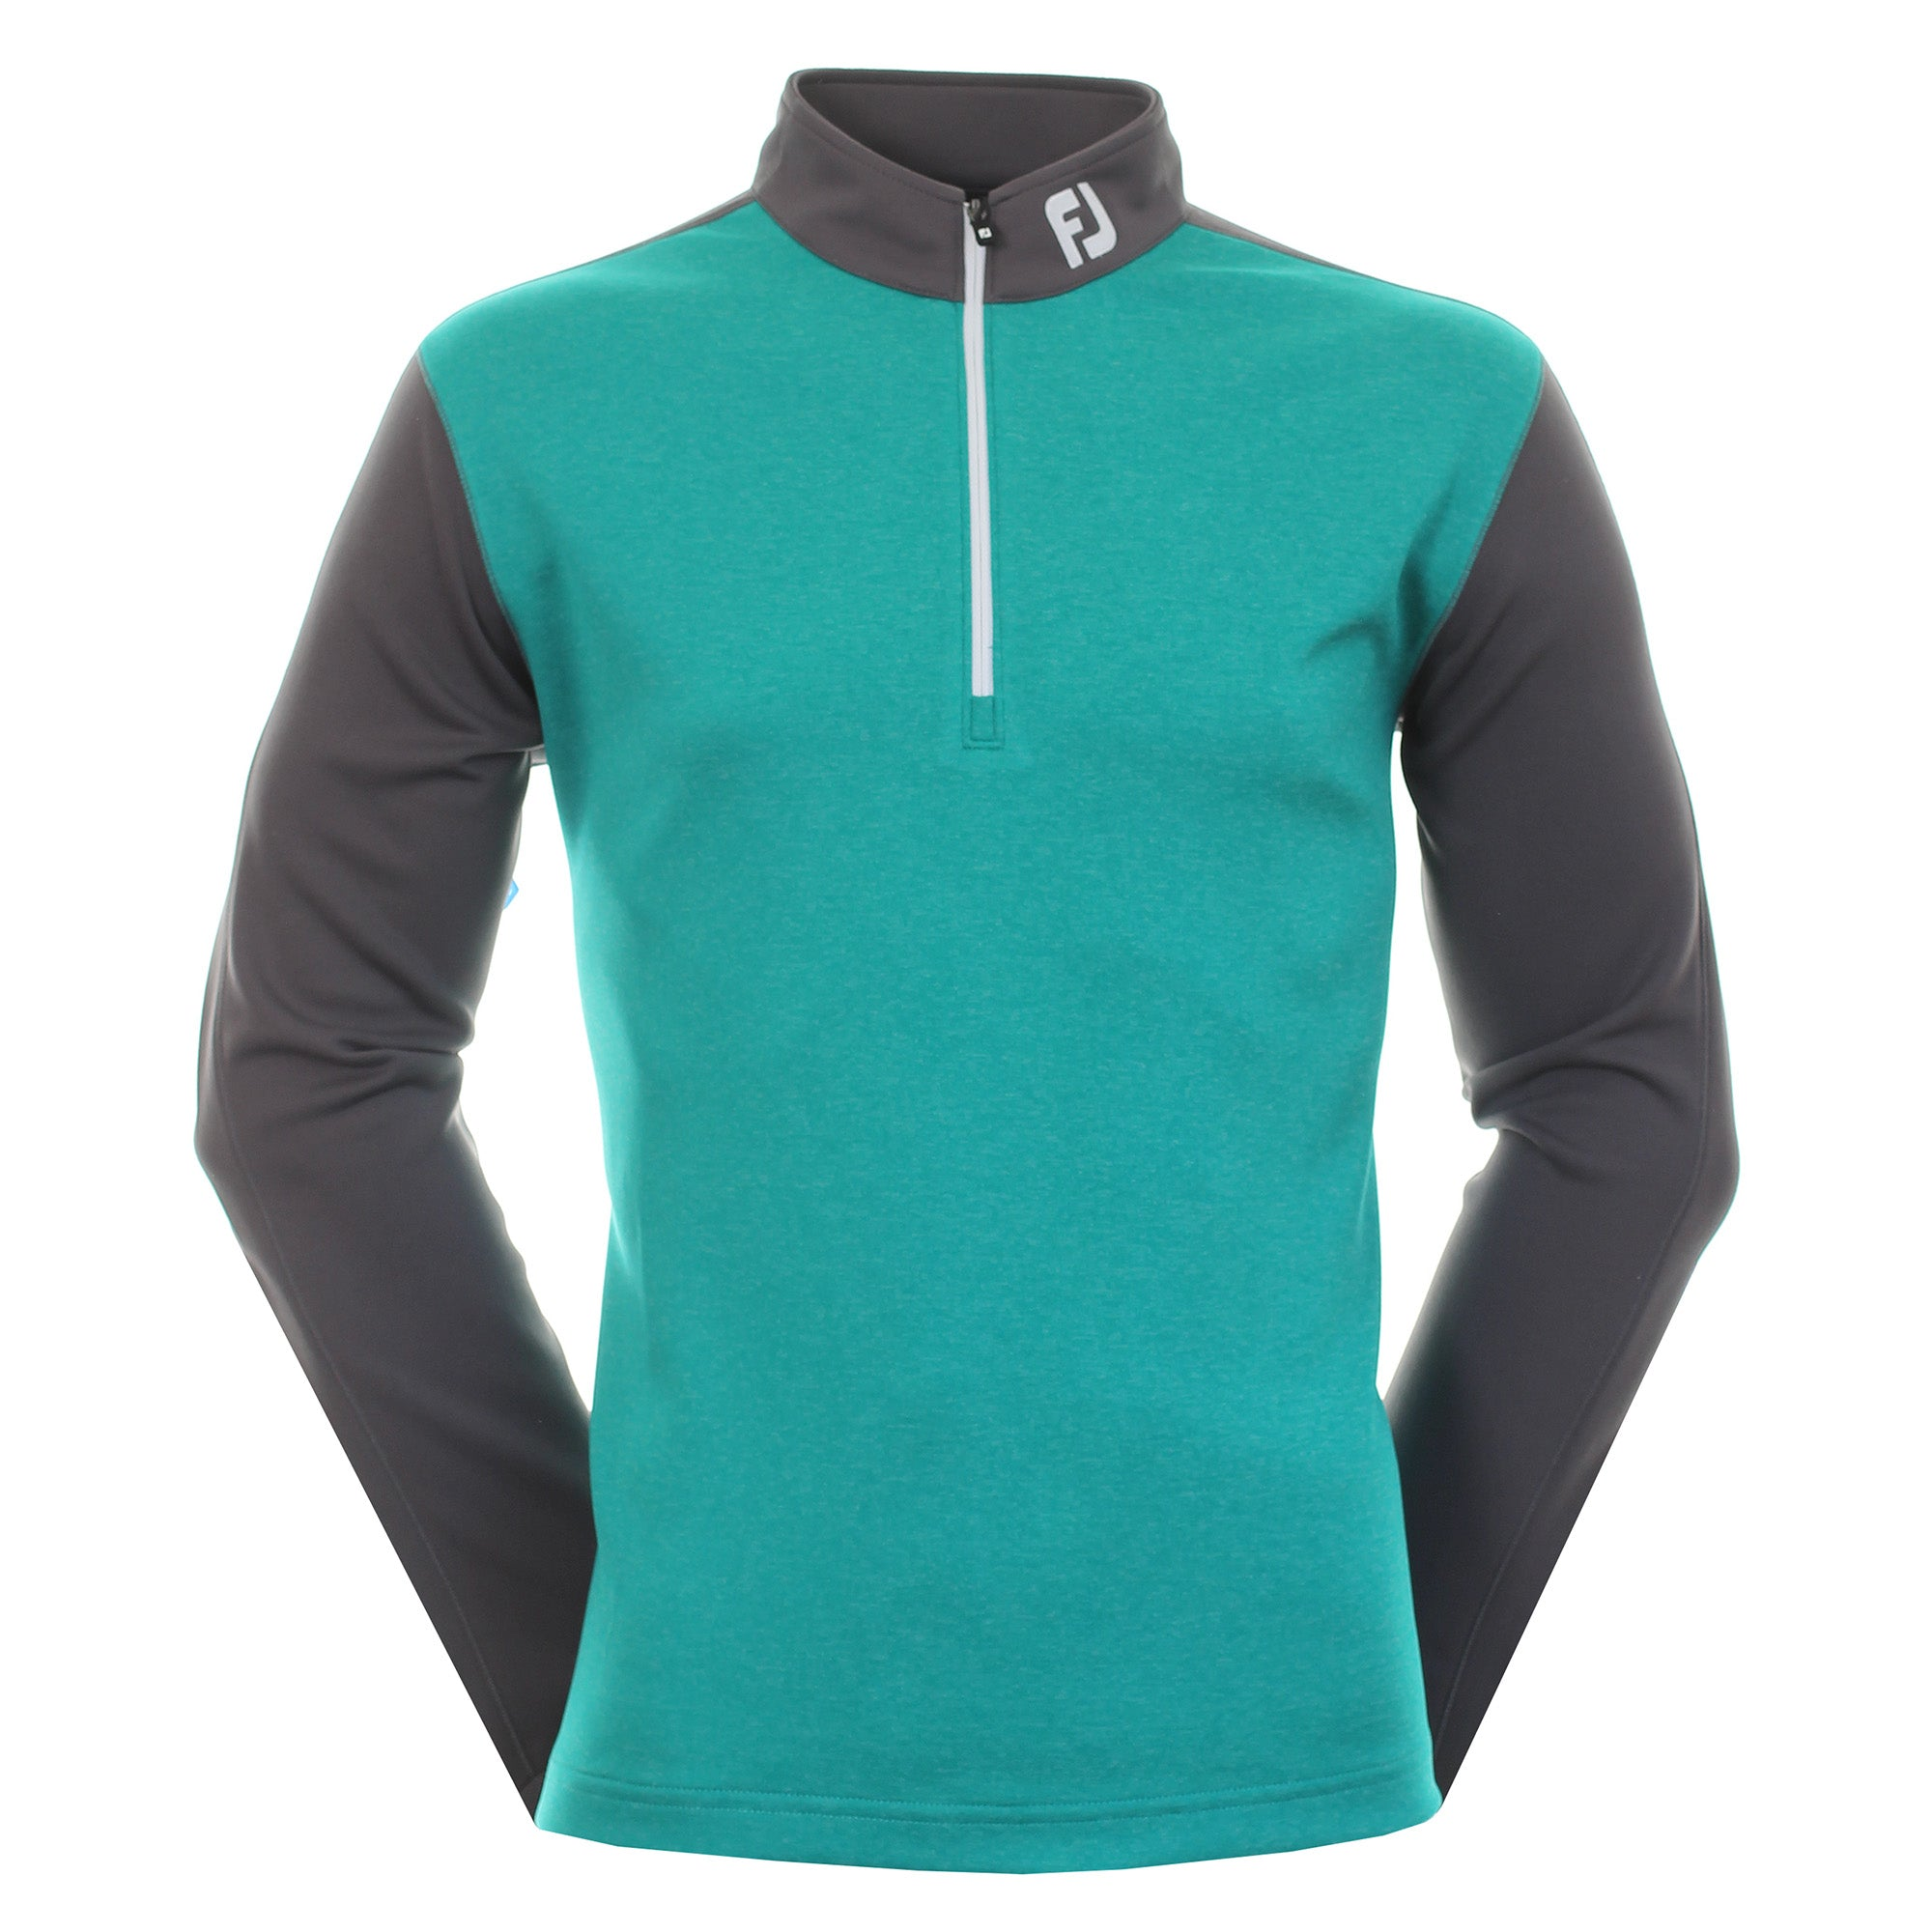 FootJoy Heather Colour Block Chill Out Pullover